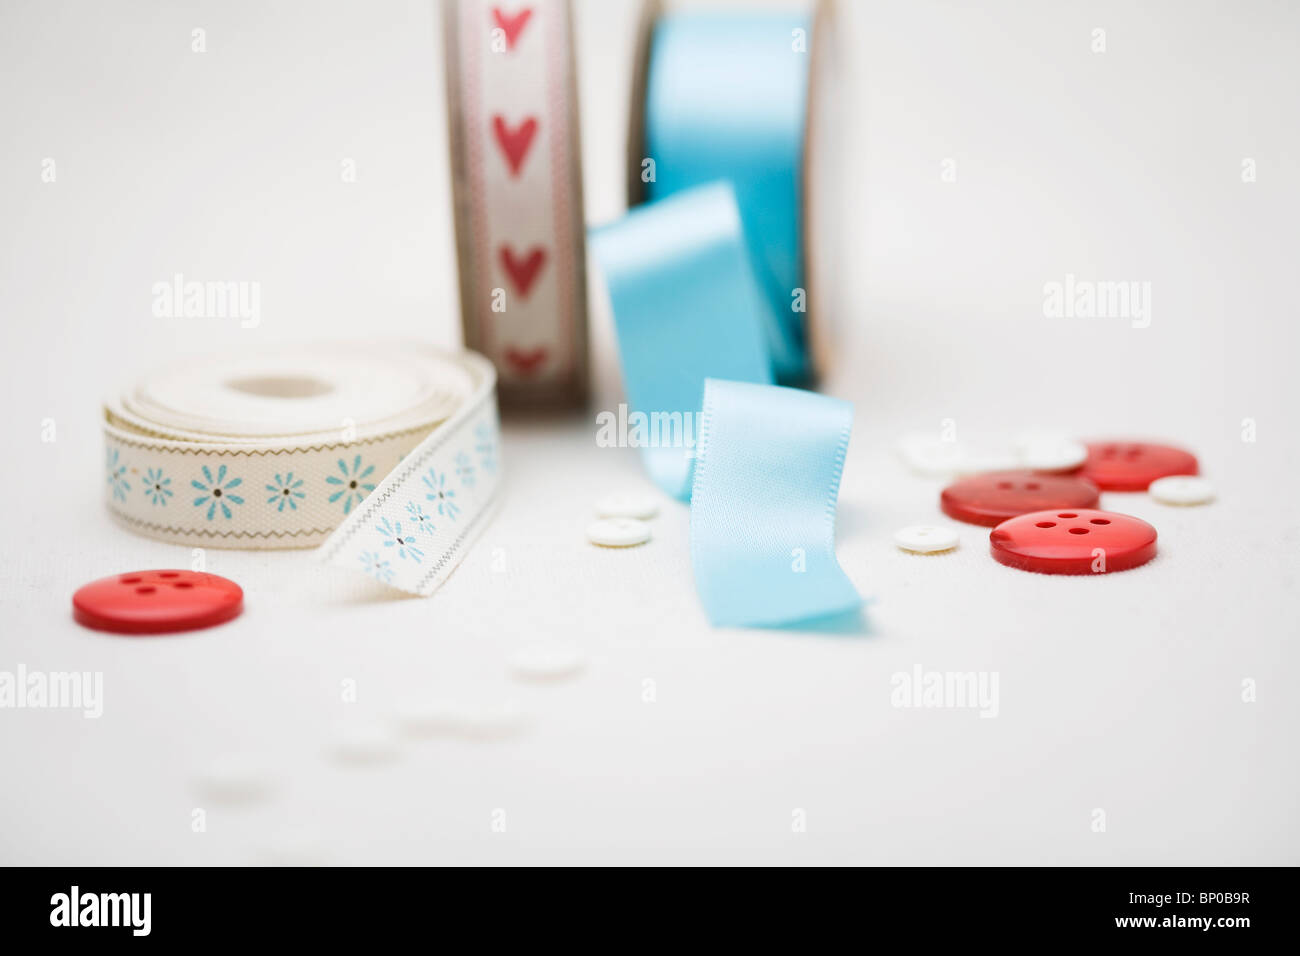 Arts and crafts materials - Stock Image